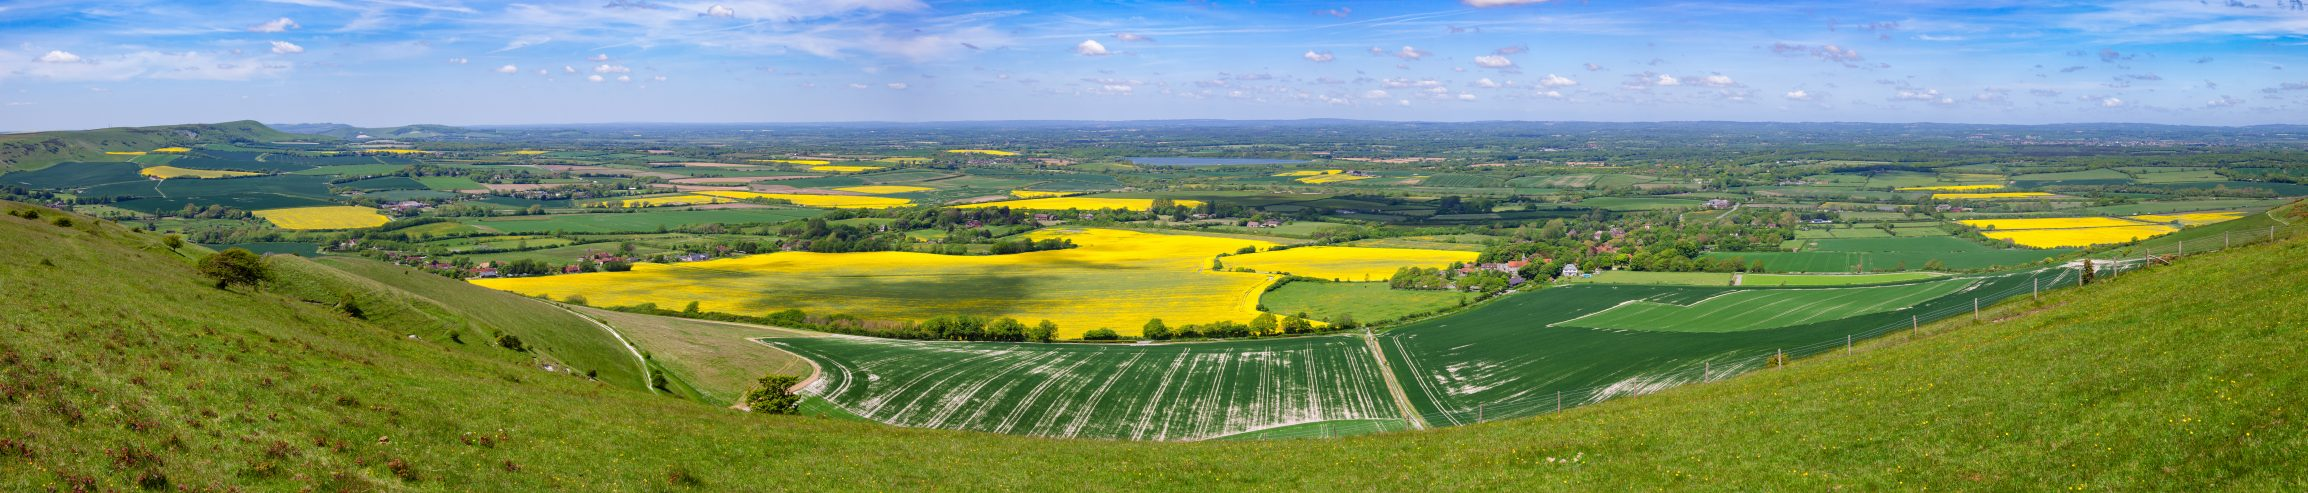 Rural Property and Countryside Matters Solicitors in Sussex